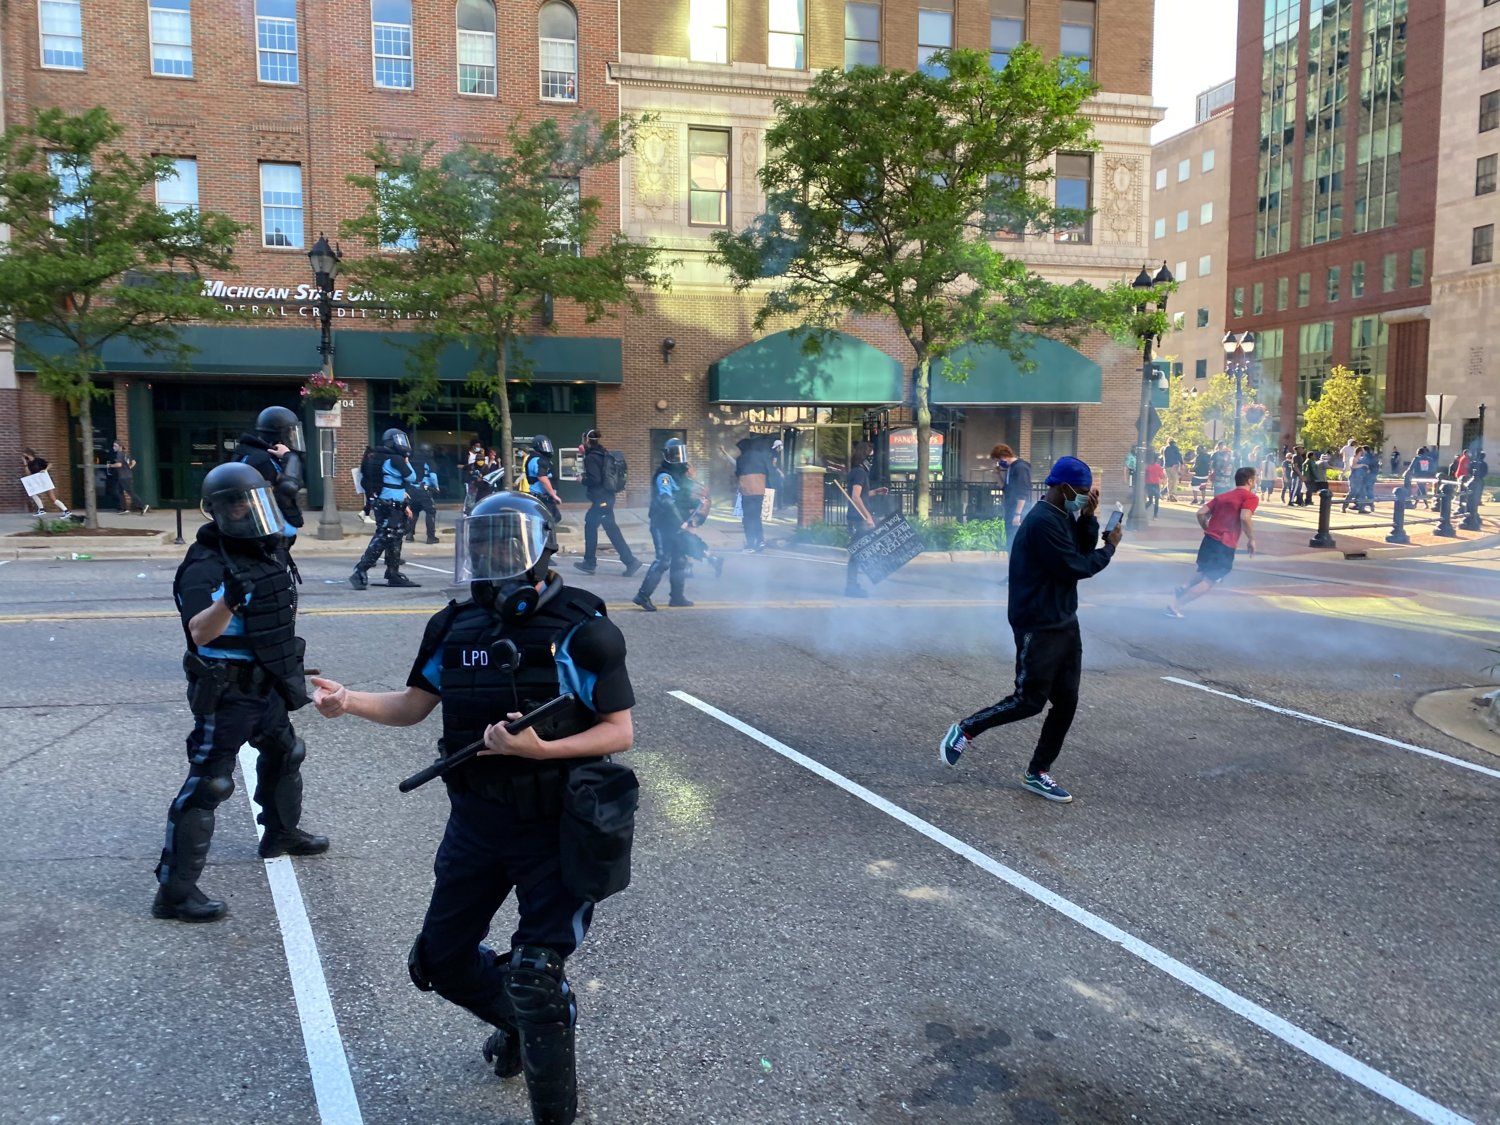 Police used tear gas after protesters burned a car on Washington Square.